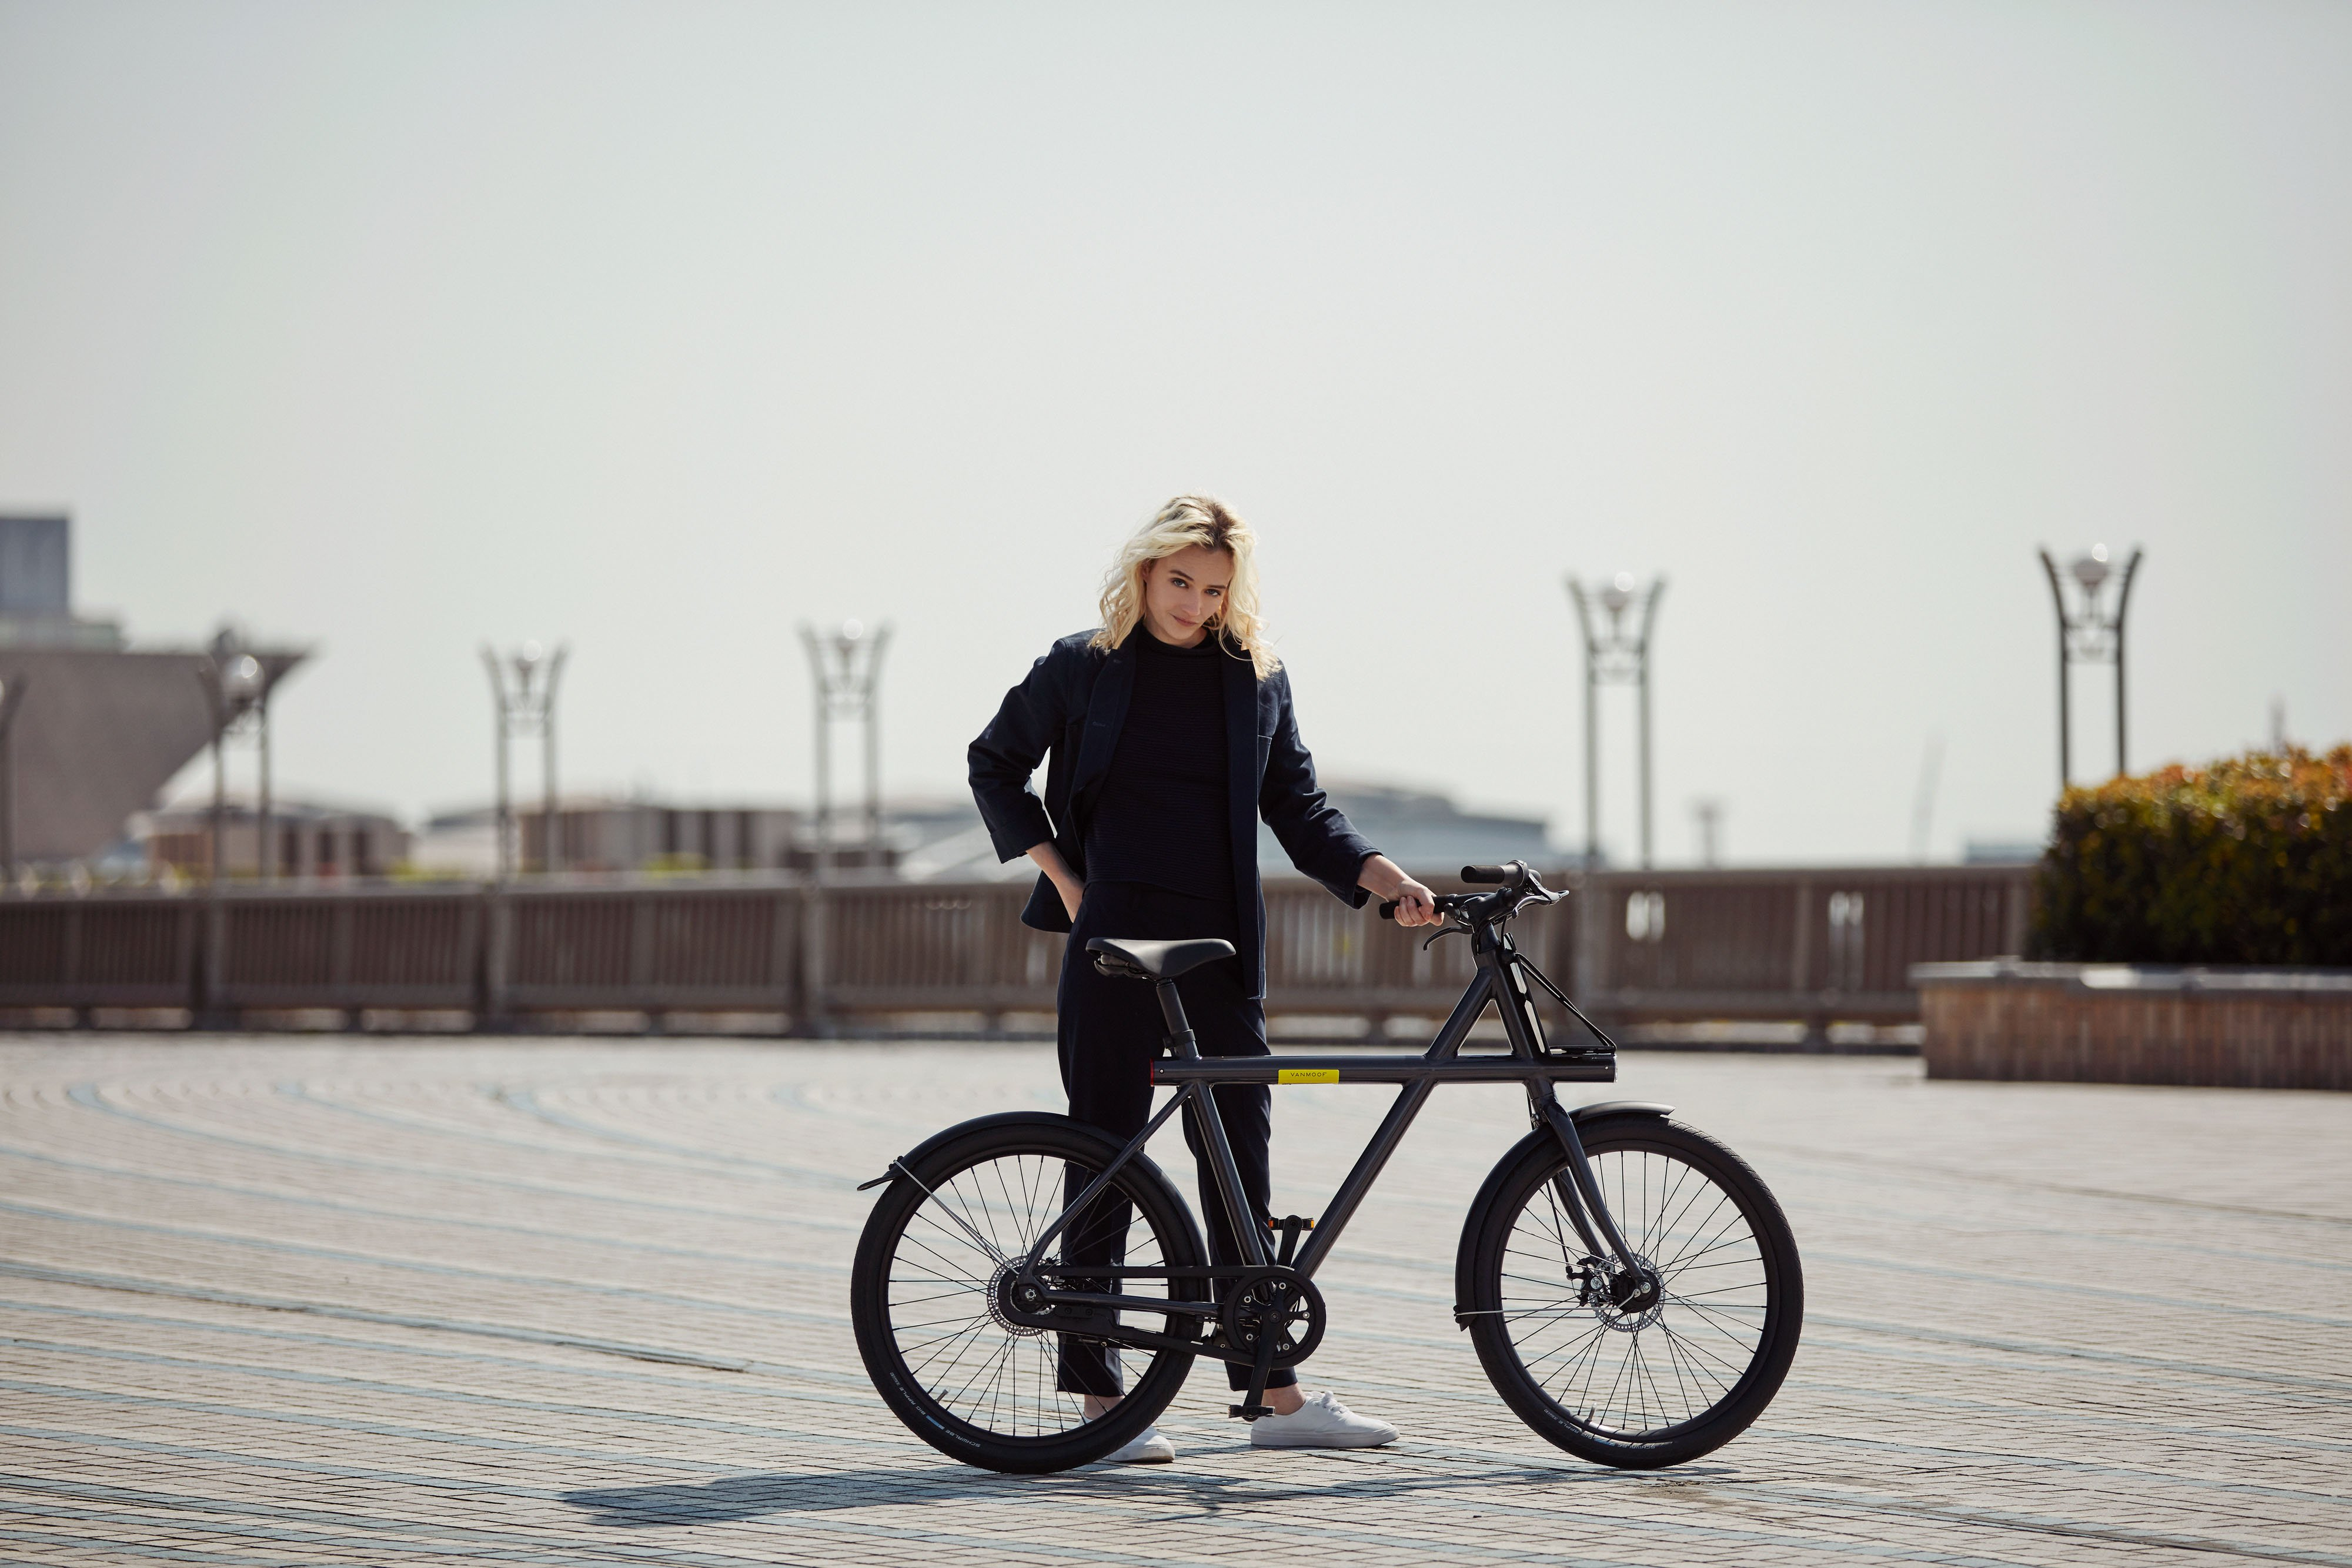 VanMoof claims to have made 'theft-proof' bike | Cyclist